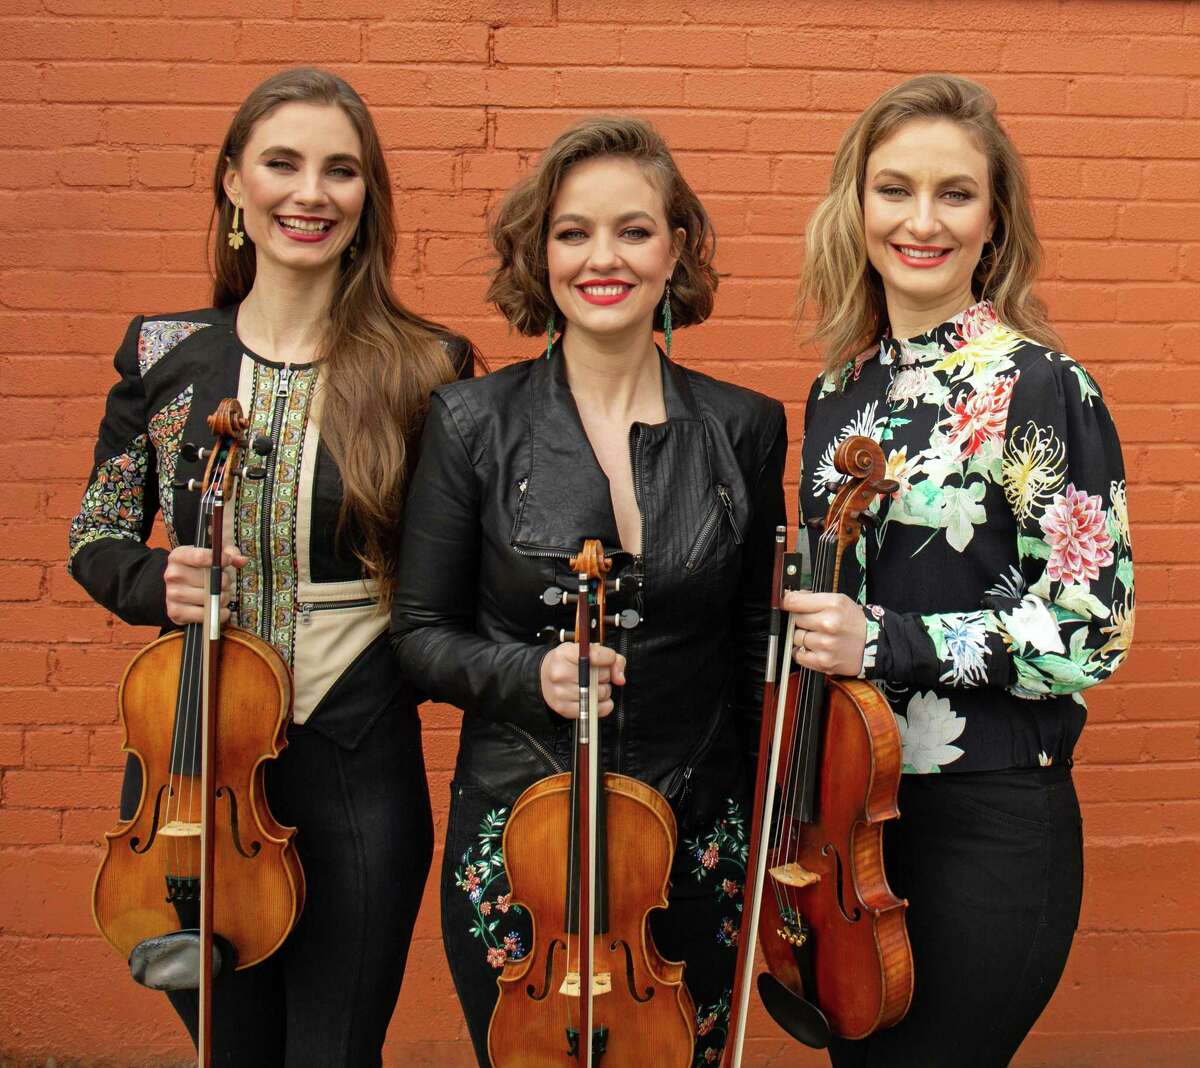 The Quebe Sisters, A triple fiddle, three-part harmony threat at The Kate July 20.